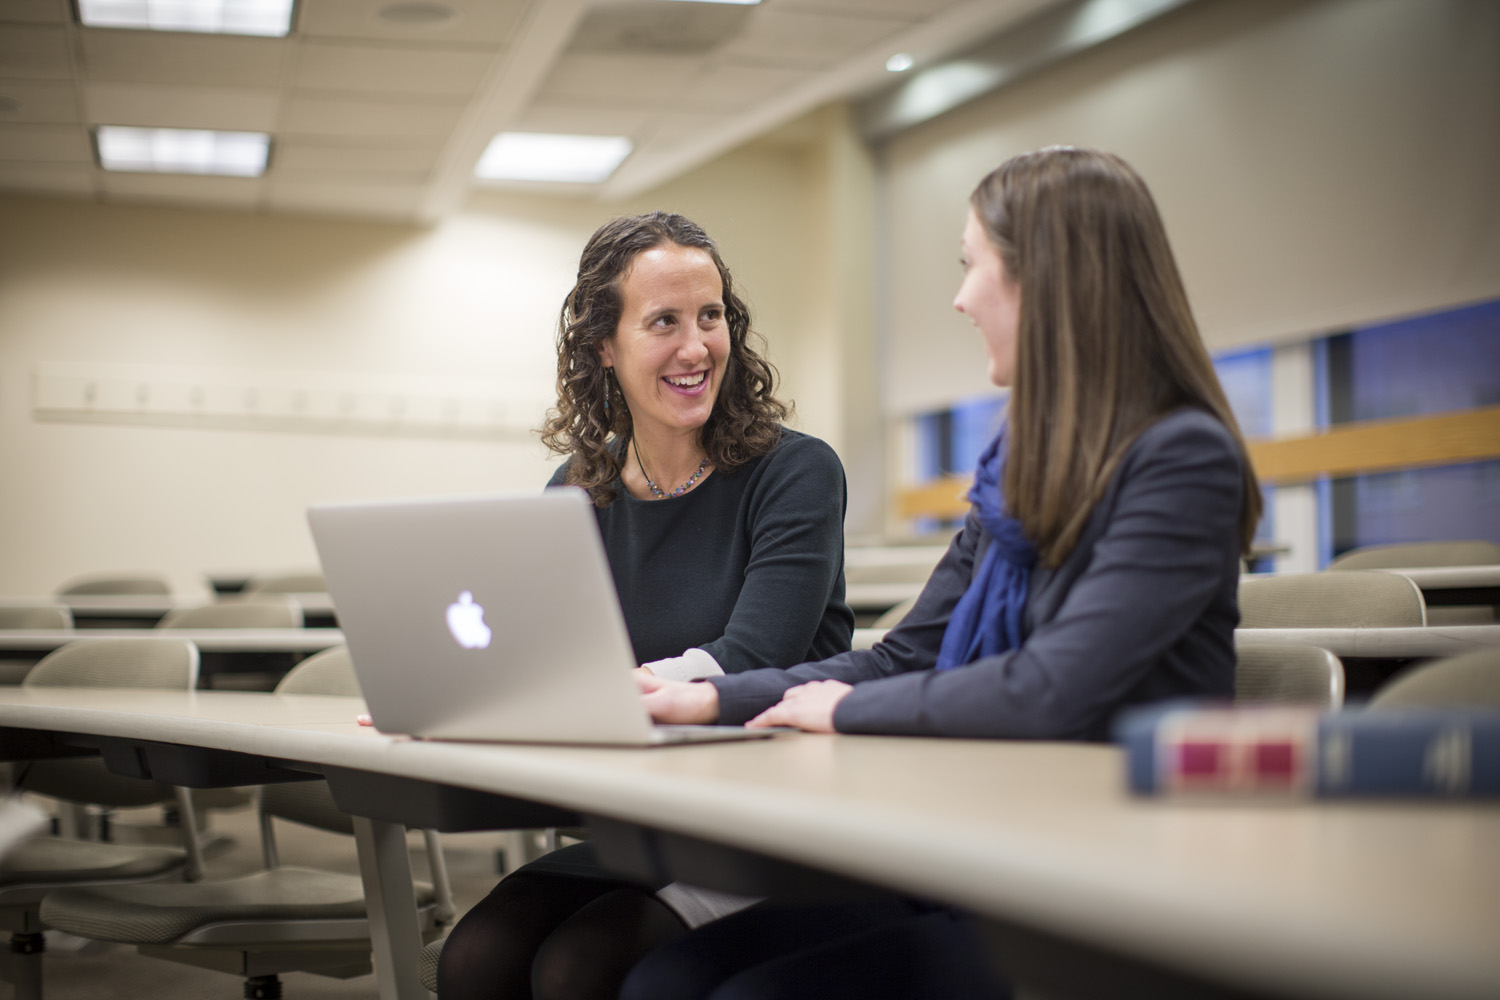 Our faculty provides academic support services to law students